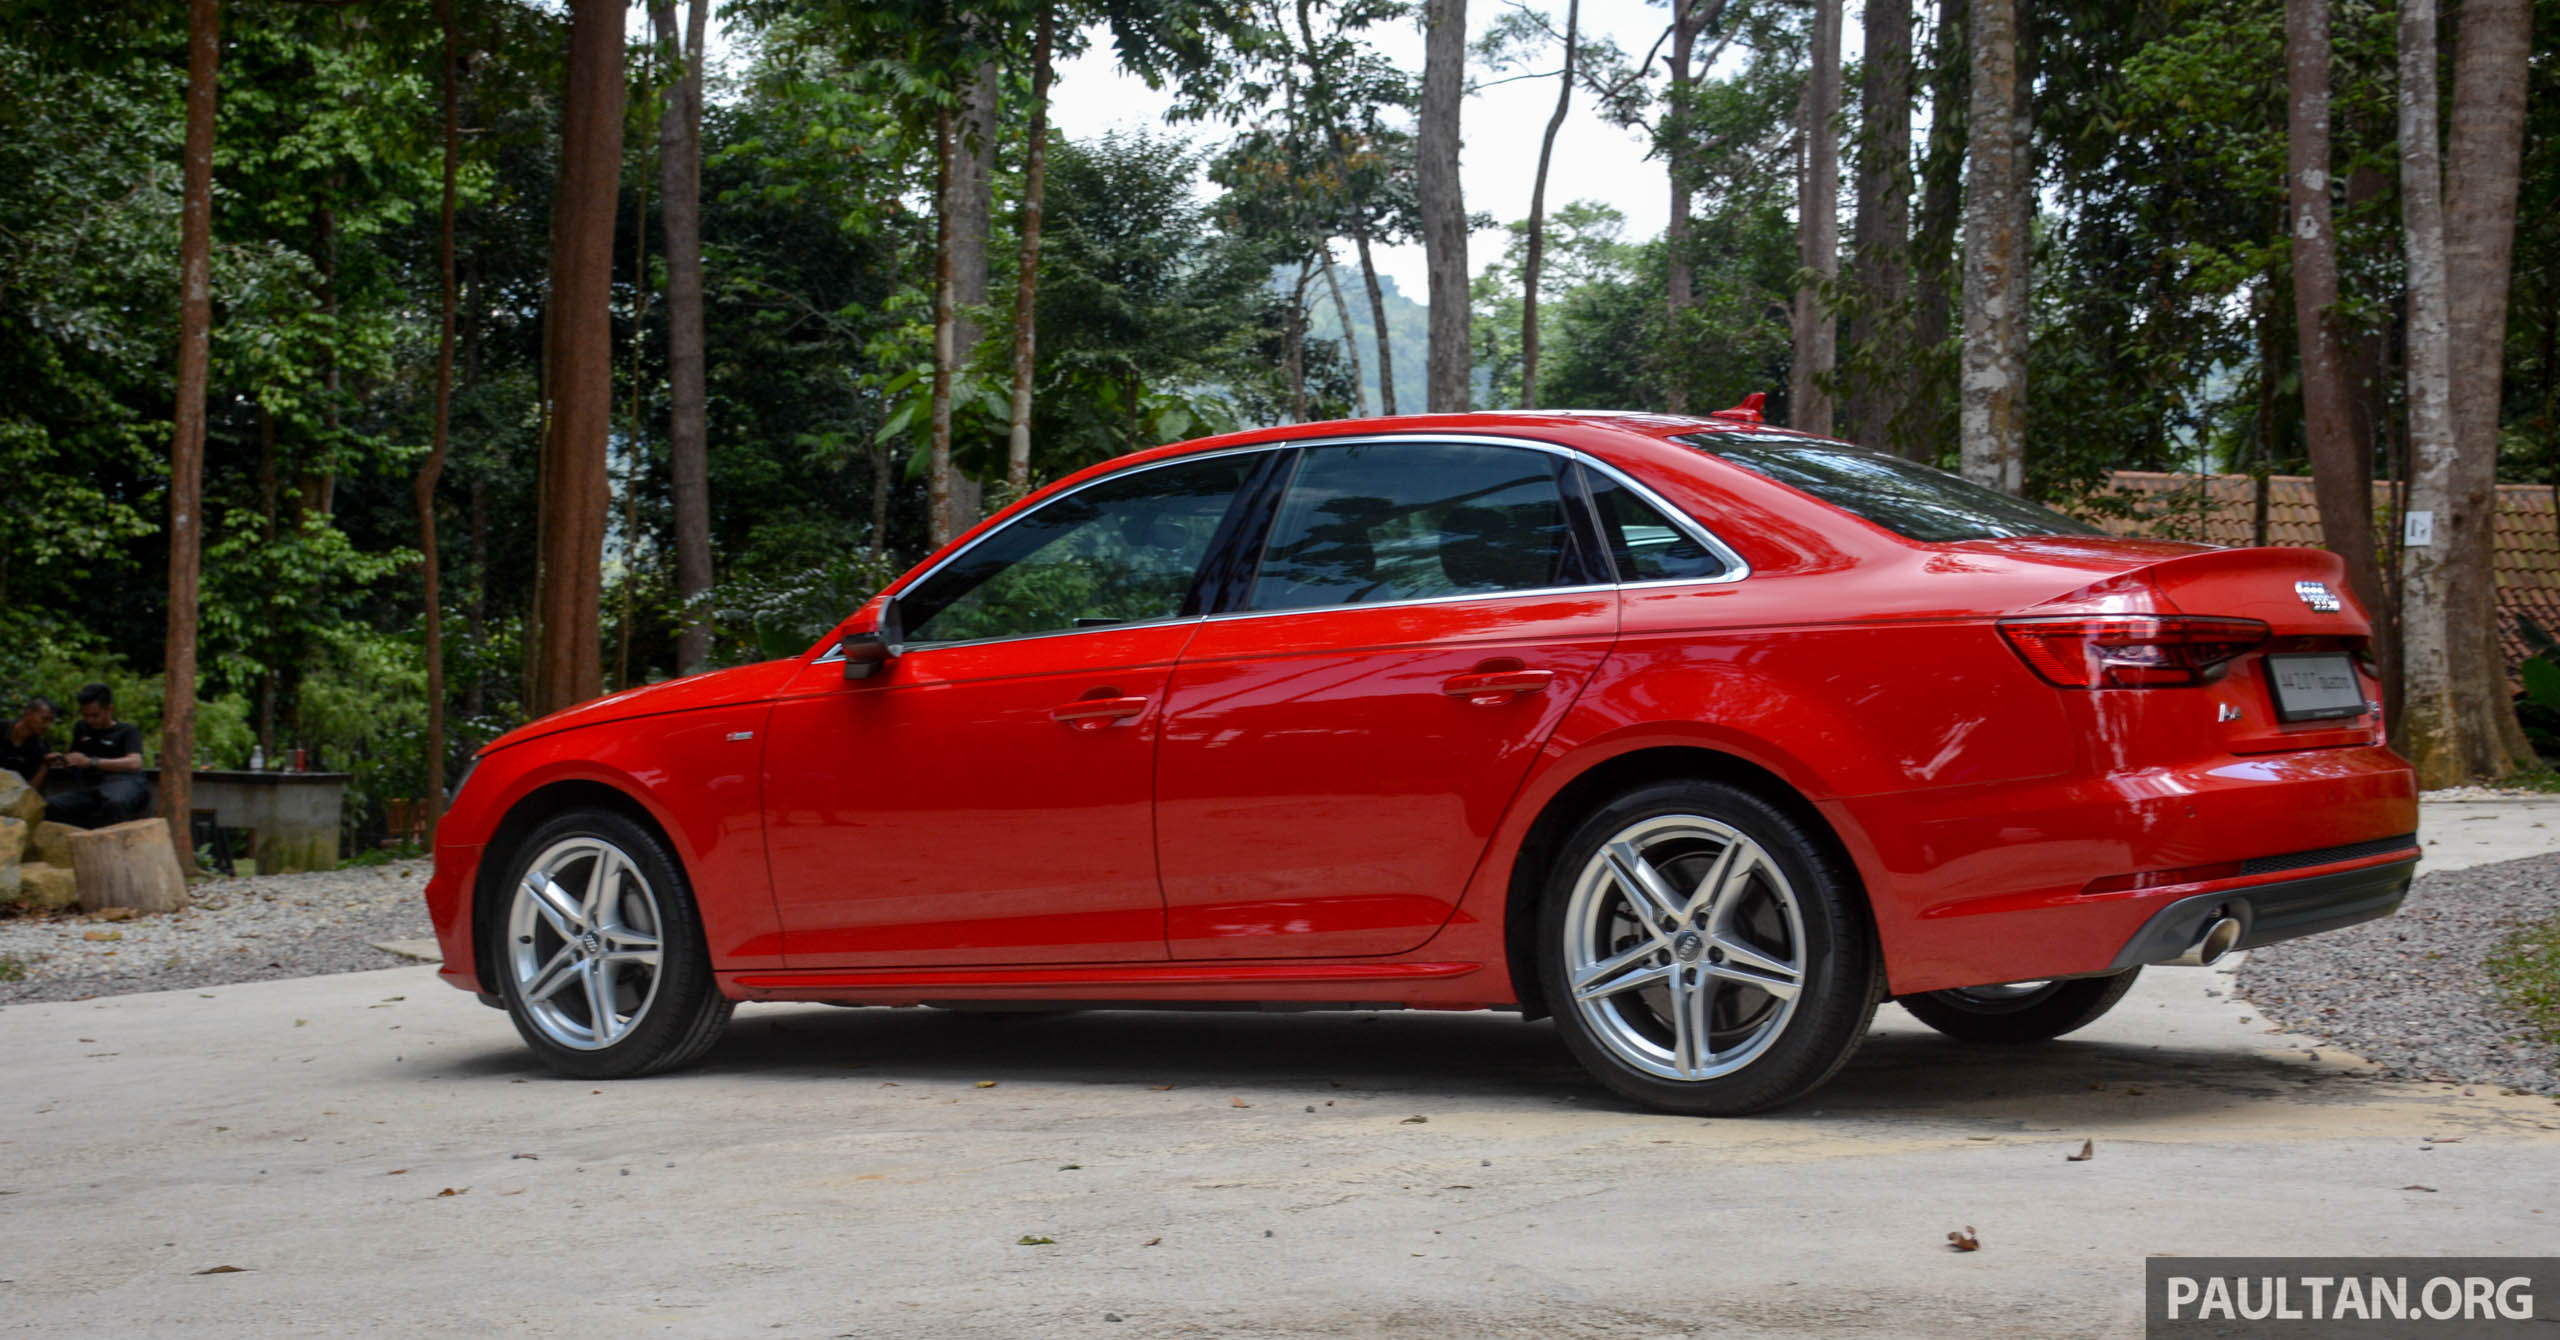 Driven B9 Audi A4 1 4 Tfsi 2 0 Quattro Sampled Image